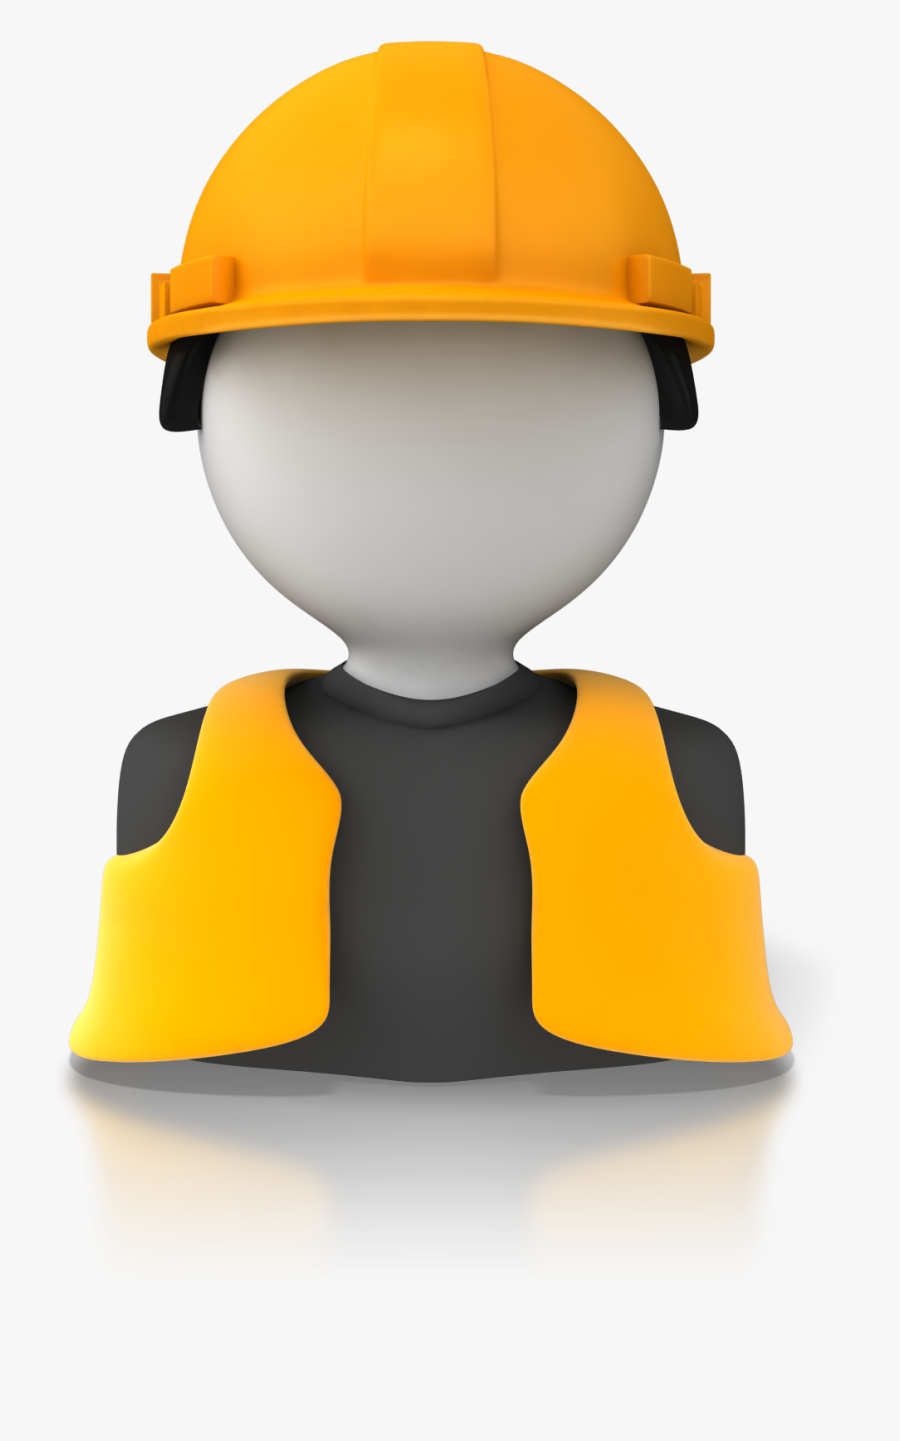 Imanoffshore We Serve Beyond Trust Career Construction - Health & Safety Policy Png, Transparent Clipart